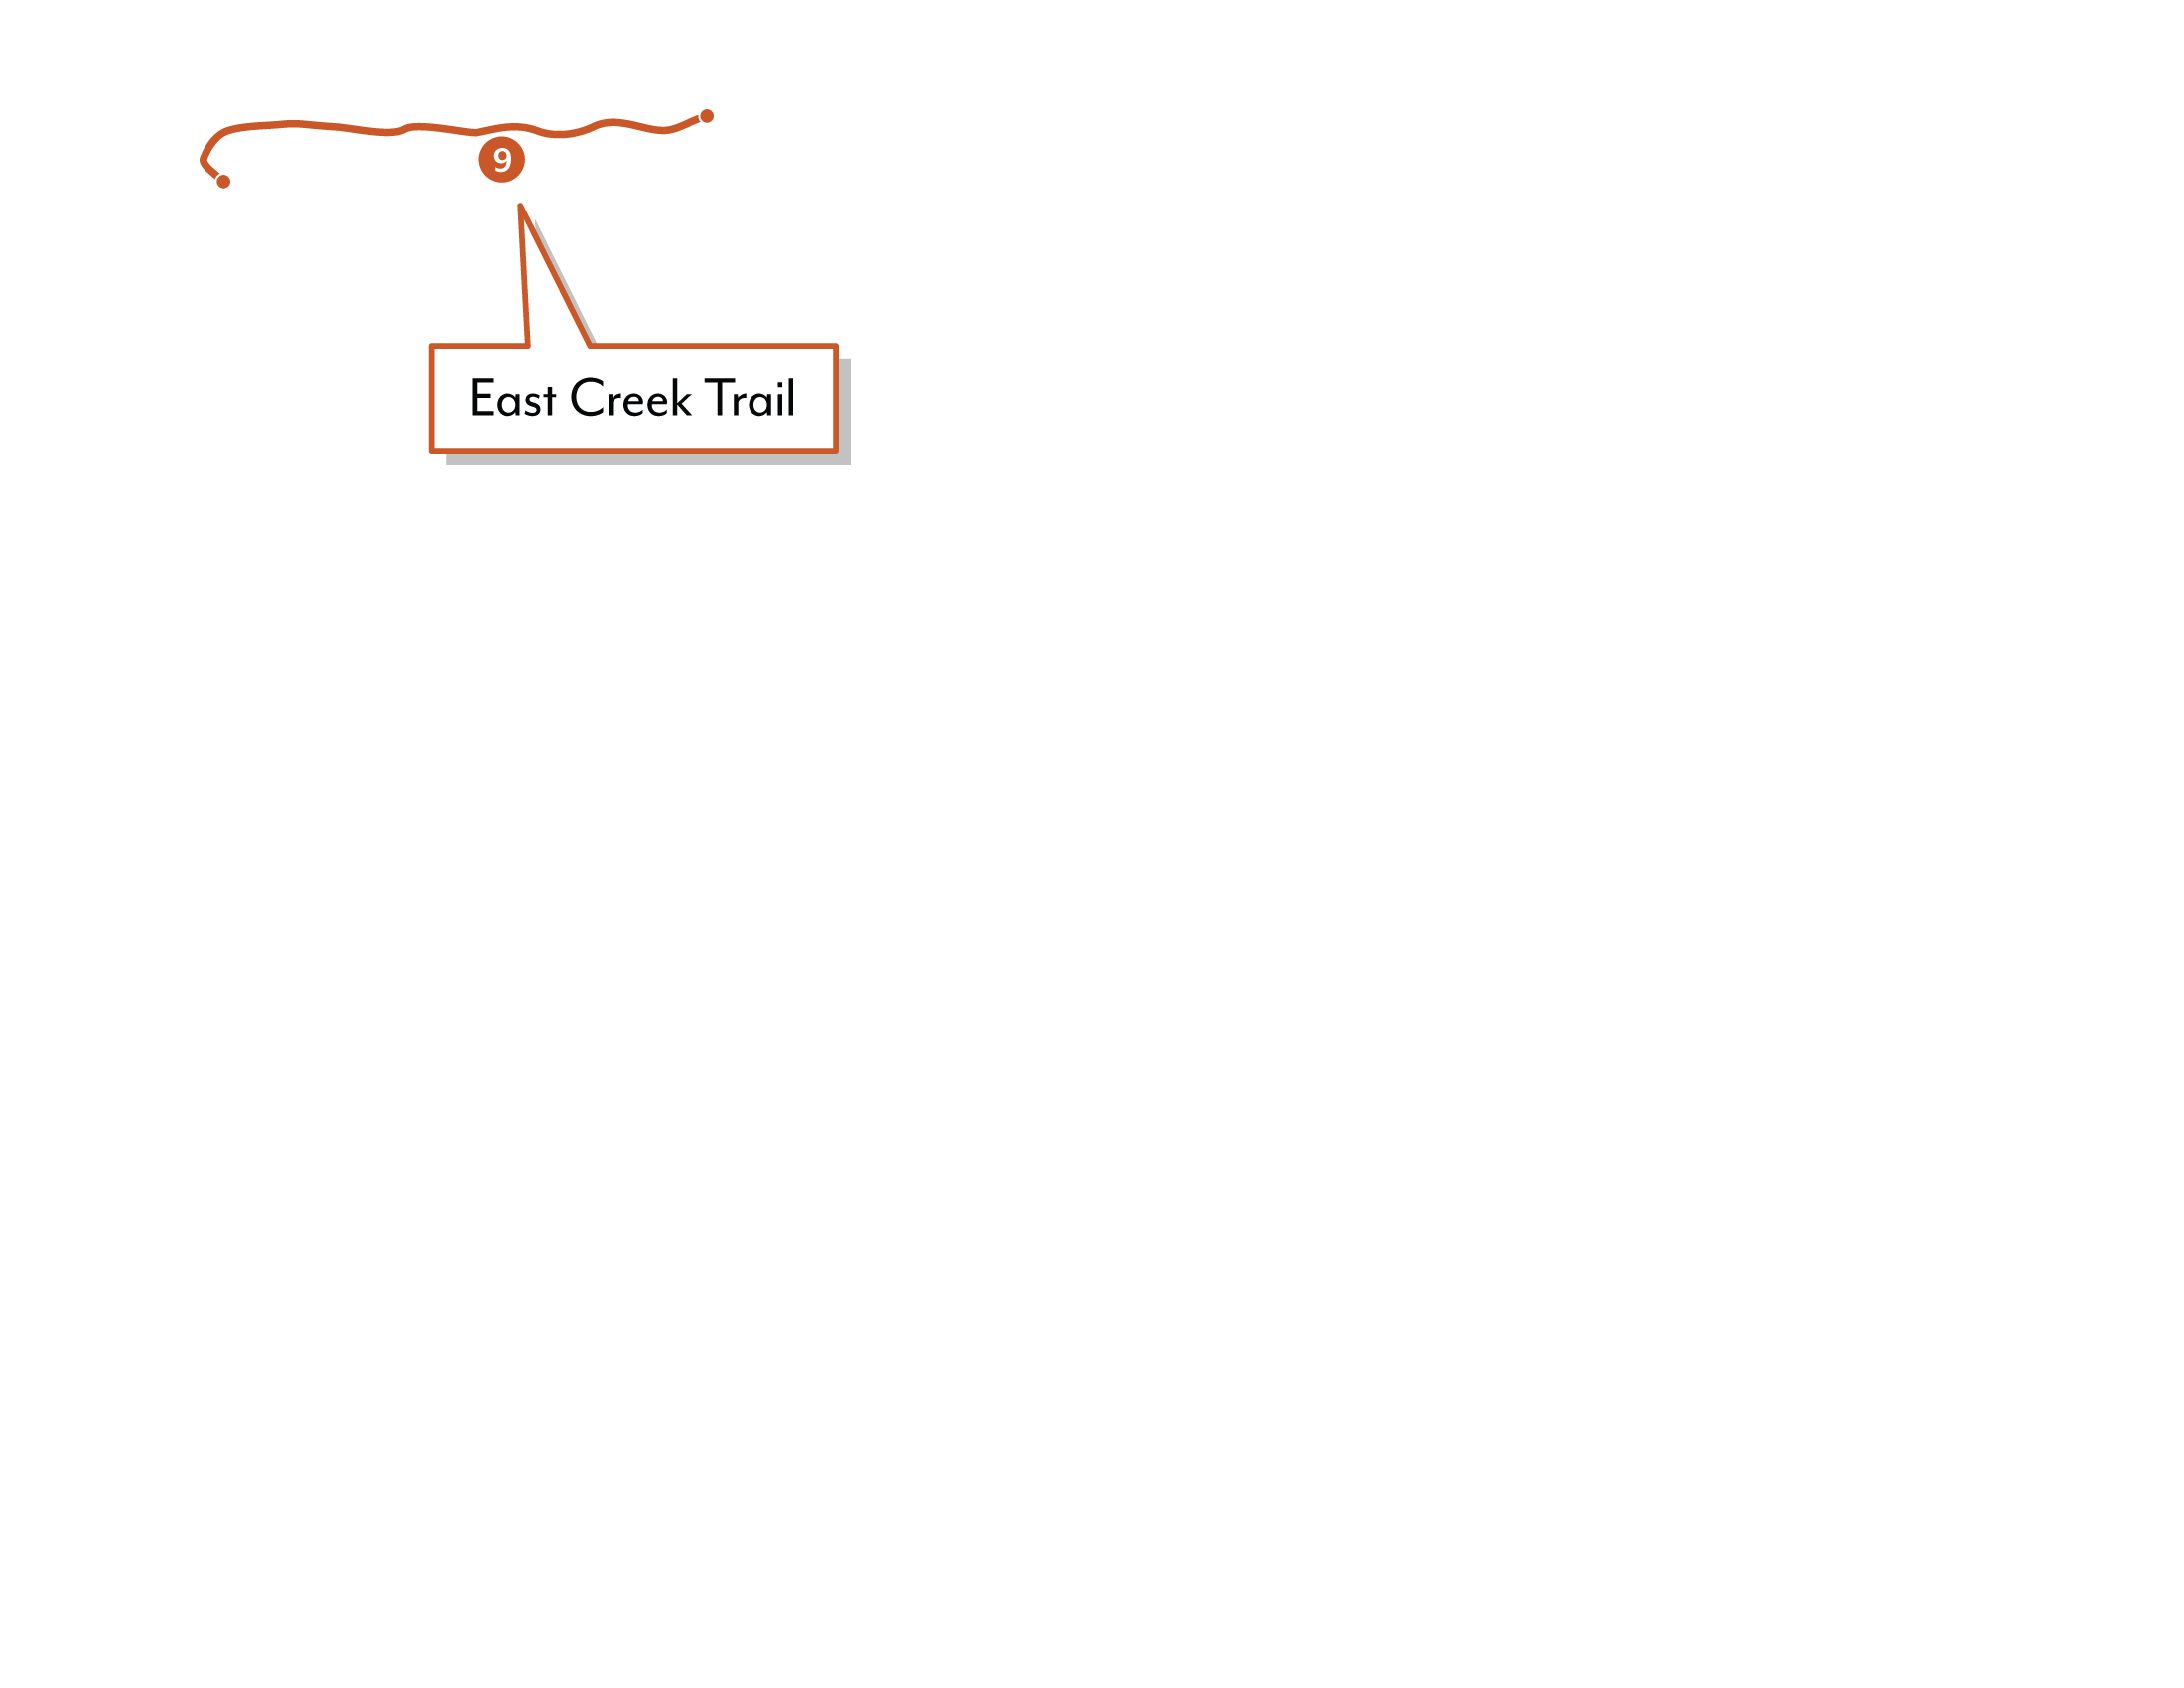 Shearwater graphic depicting the East Creek Trail